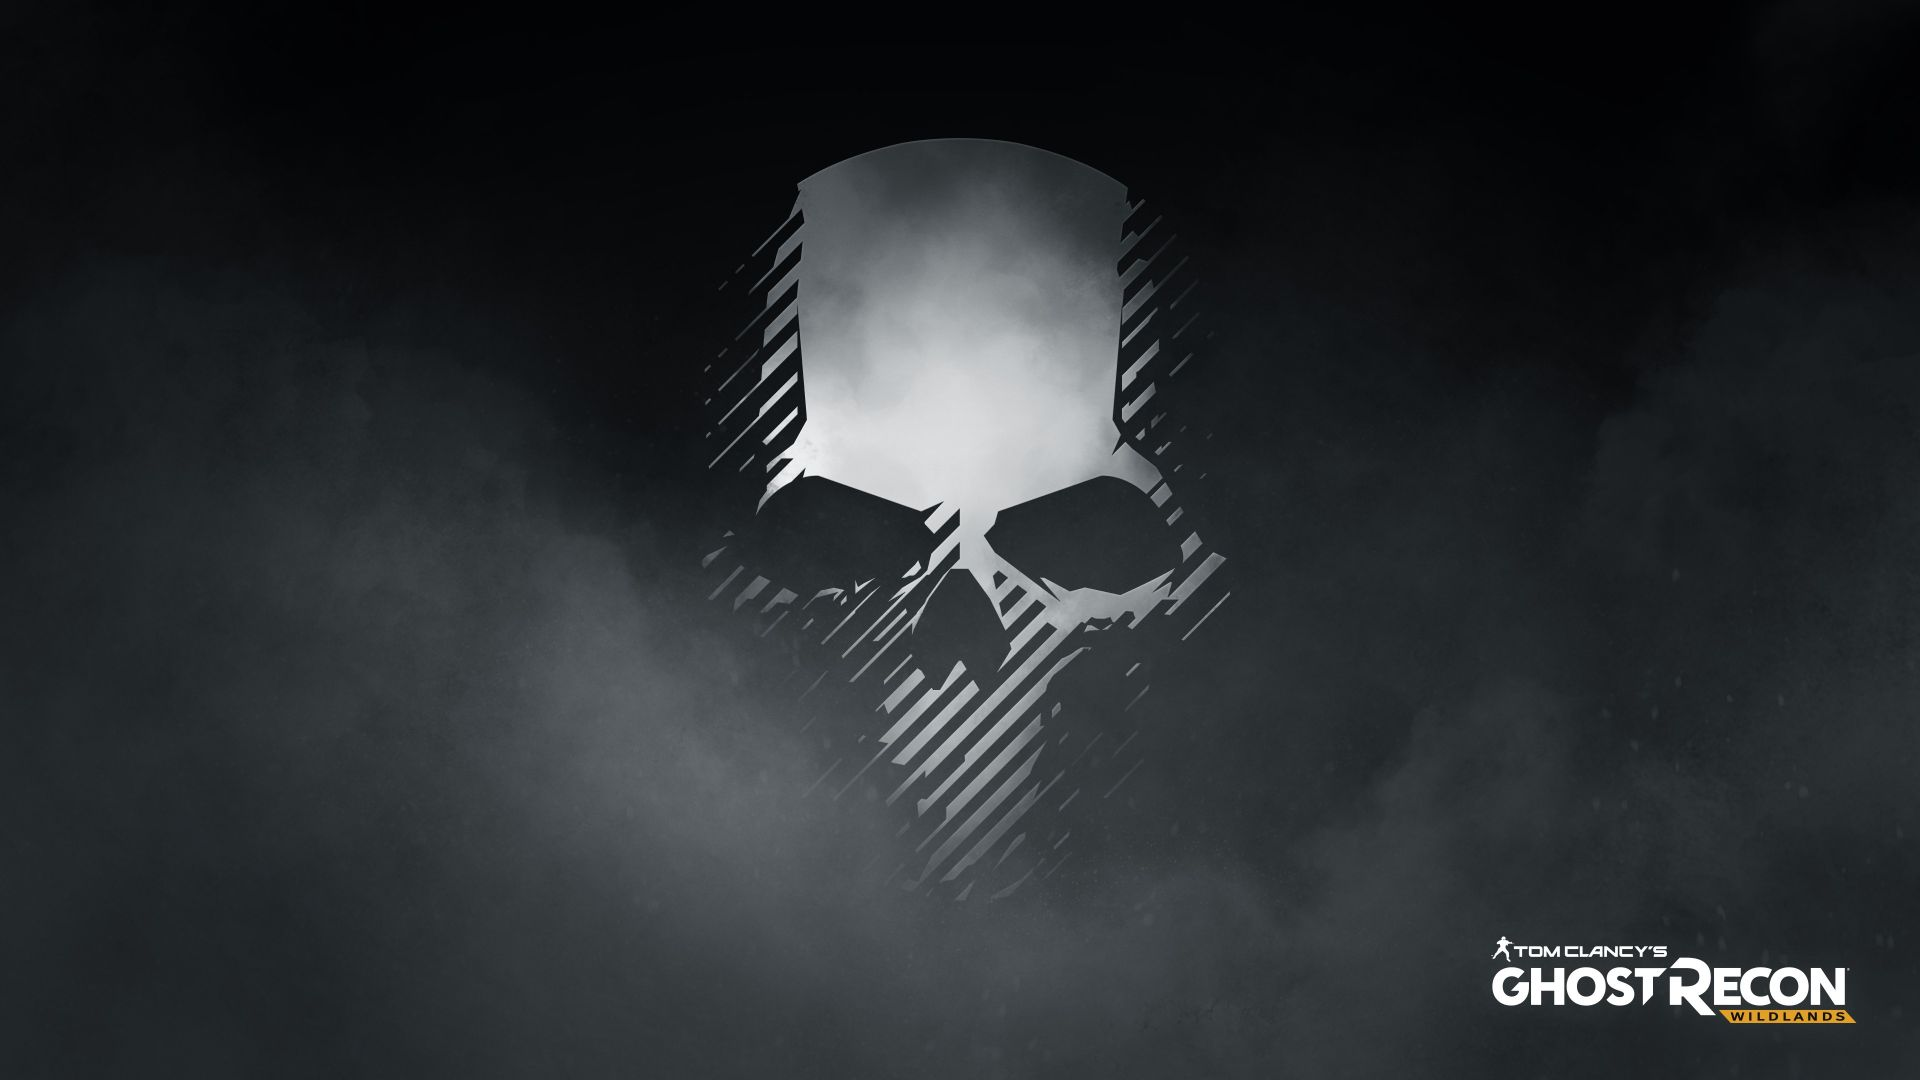 Wallpaper Tom Clancy's Ghost Recon: Wildlands video game, 2017 game, skull